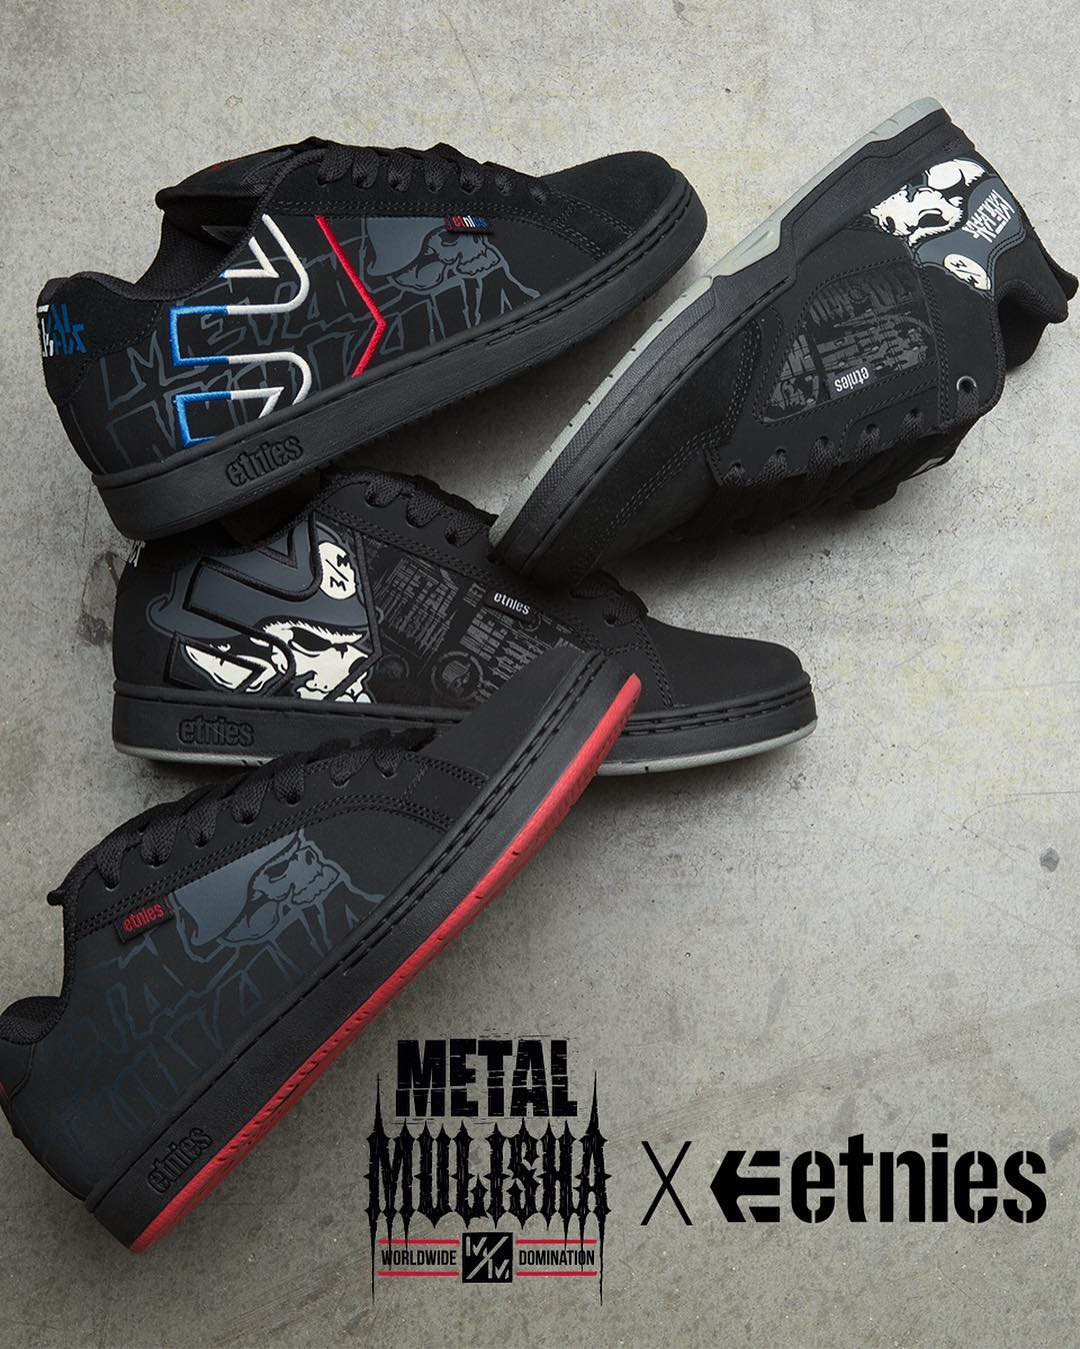 The new batch of @MetalMulisha ✖️ @Etnies are in